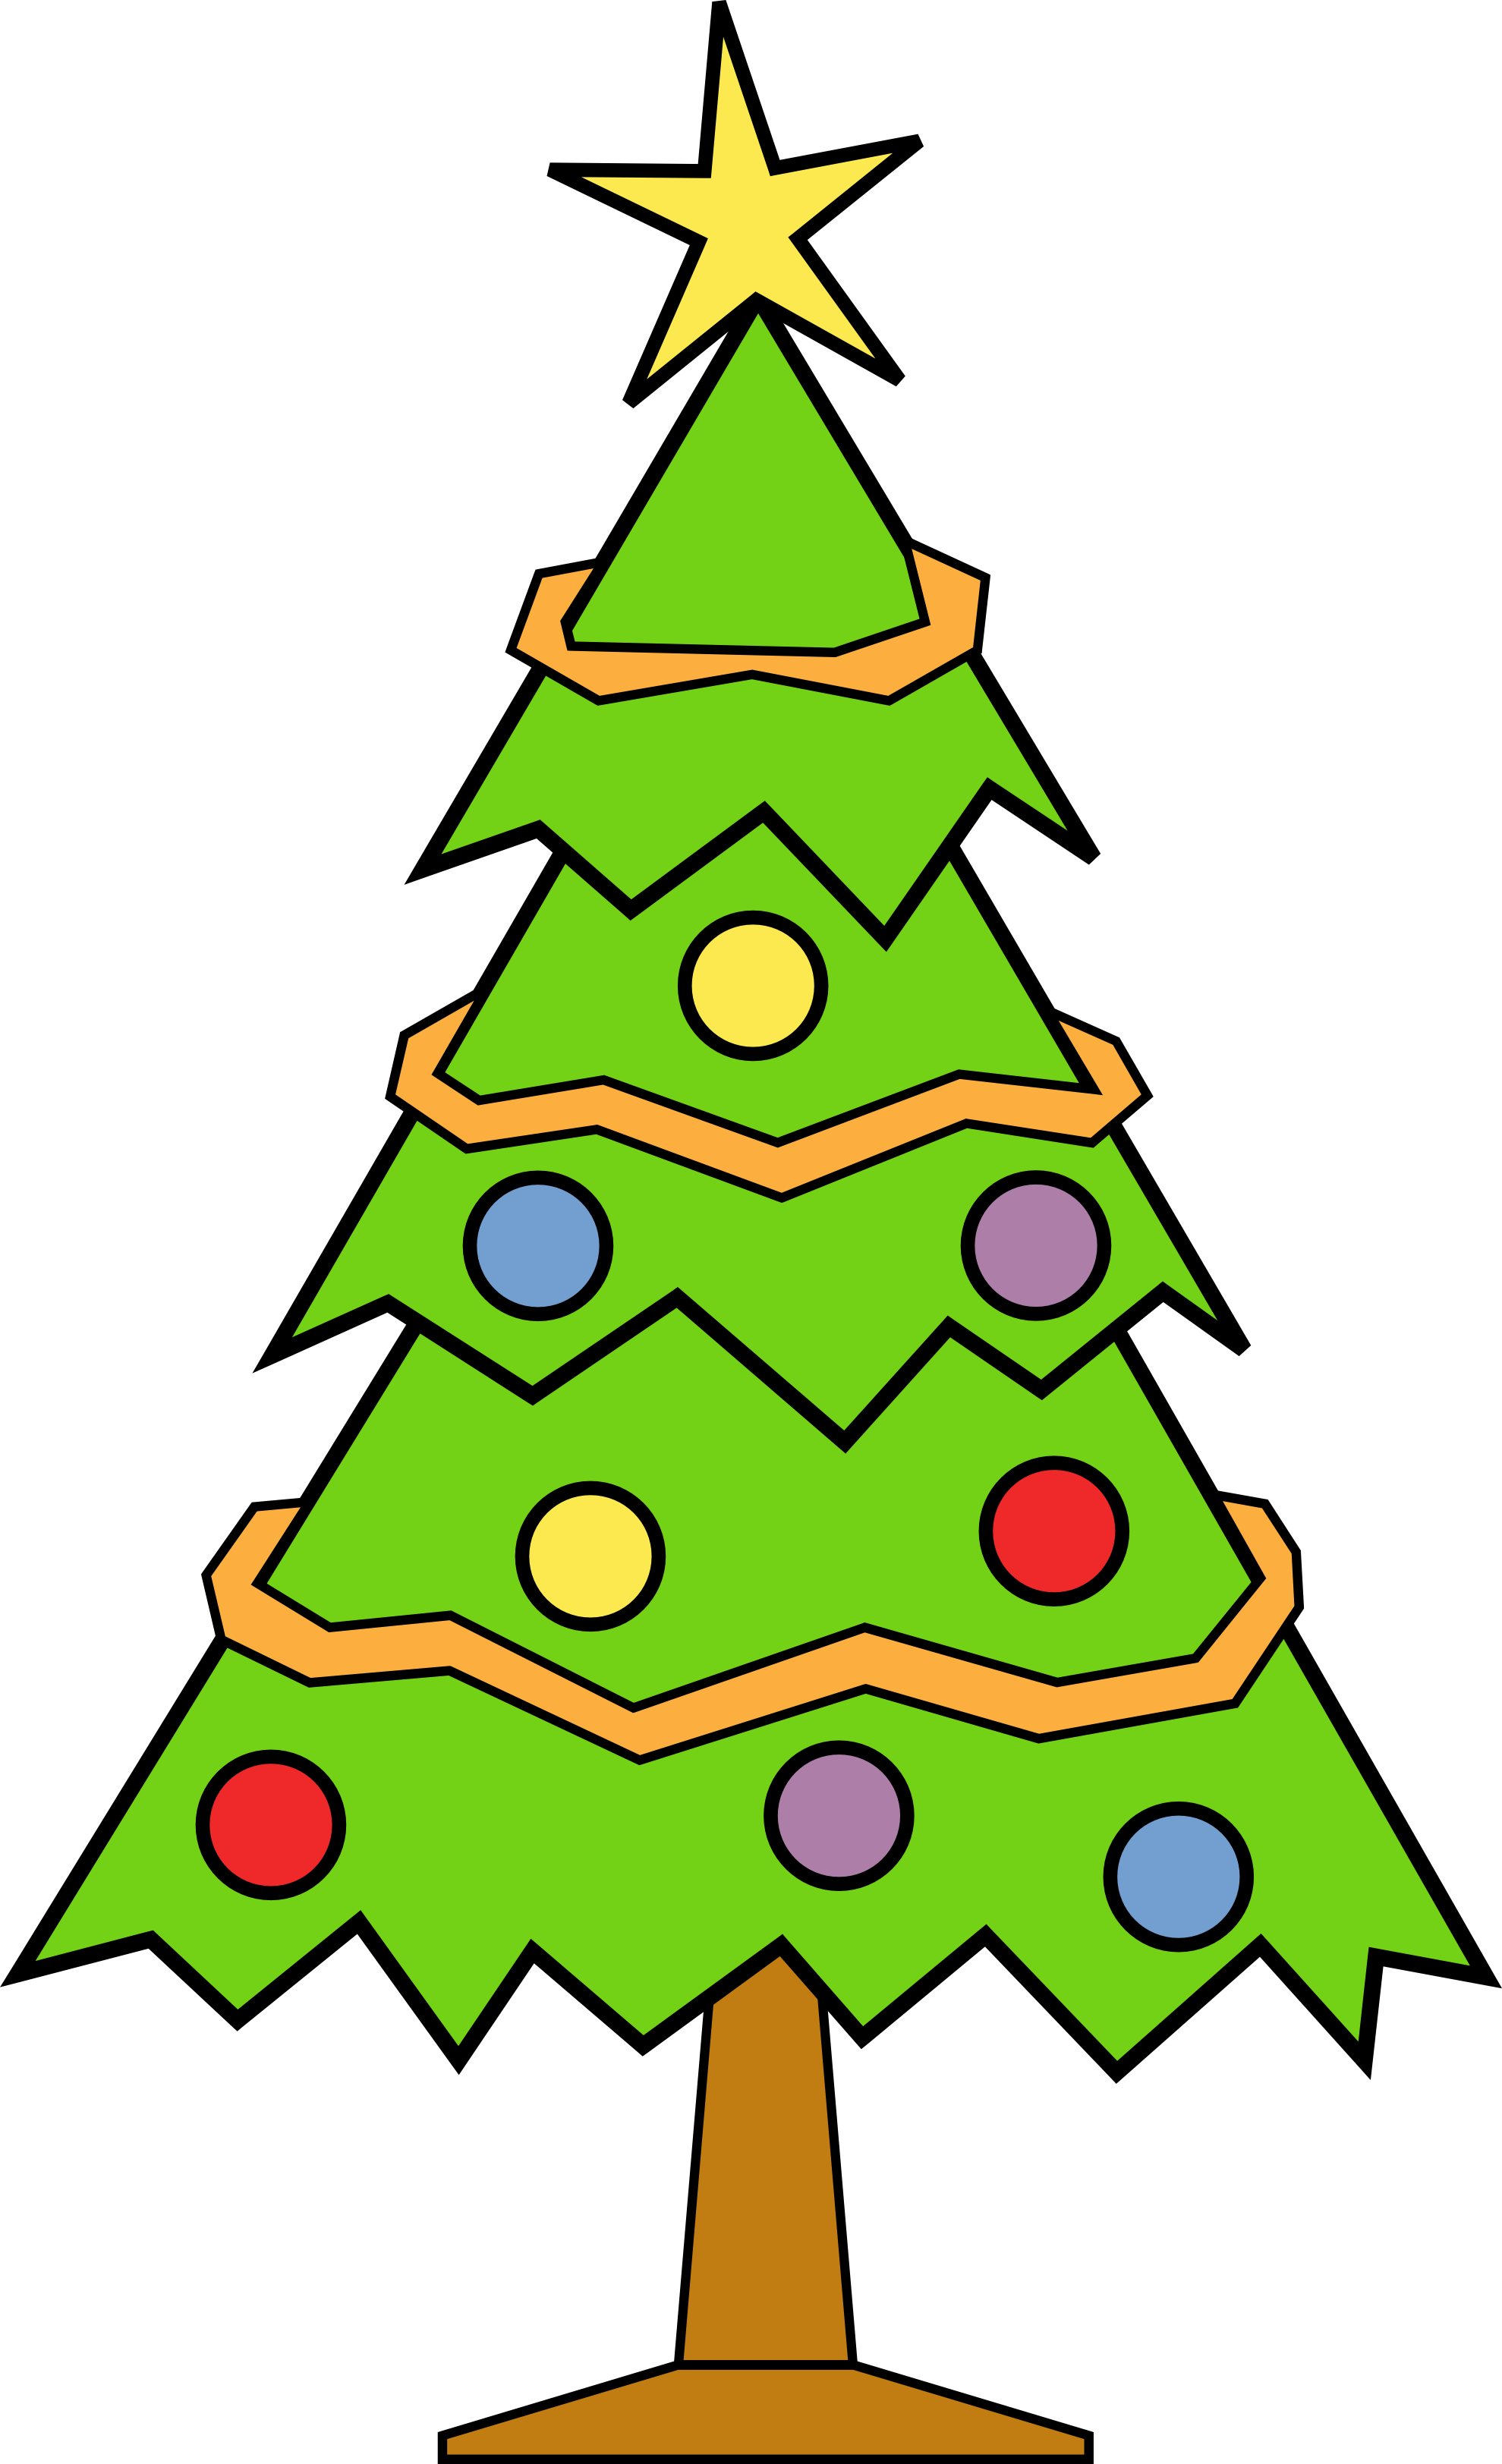 Grinch tree clipart image freeuse Grinch christmas clipart - ClipartFest image freeuse